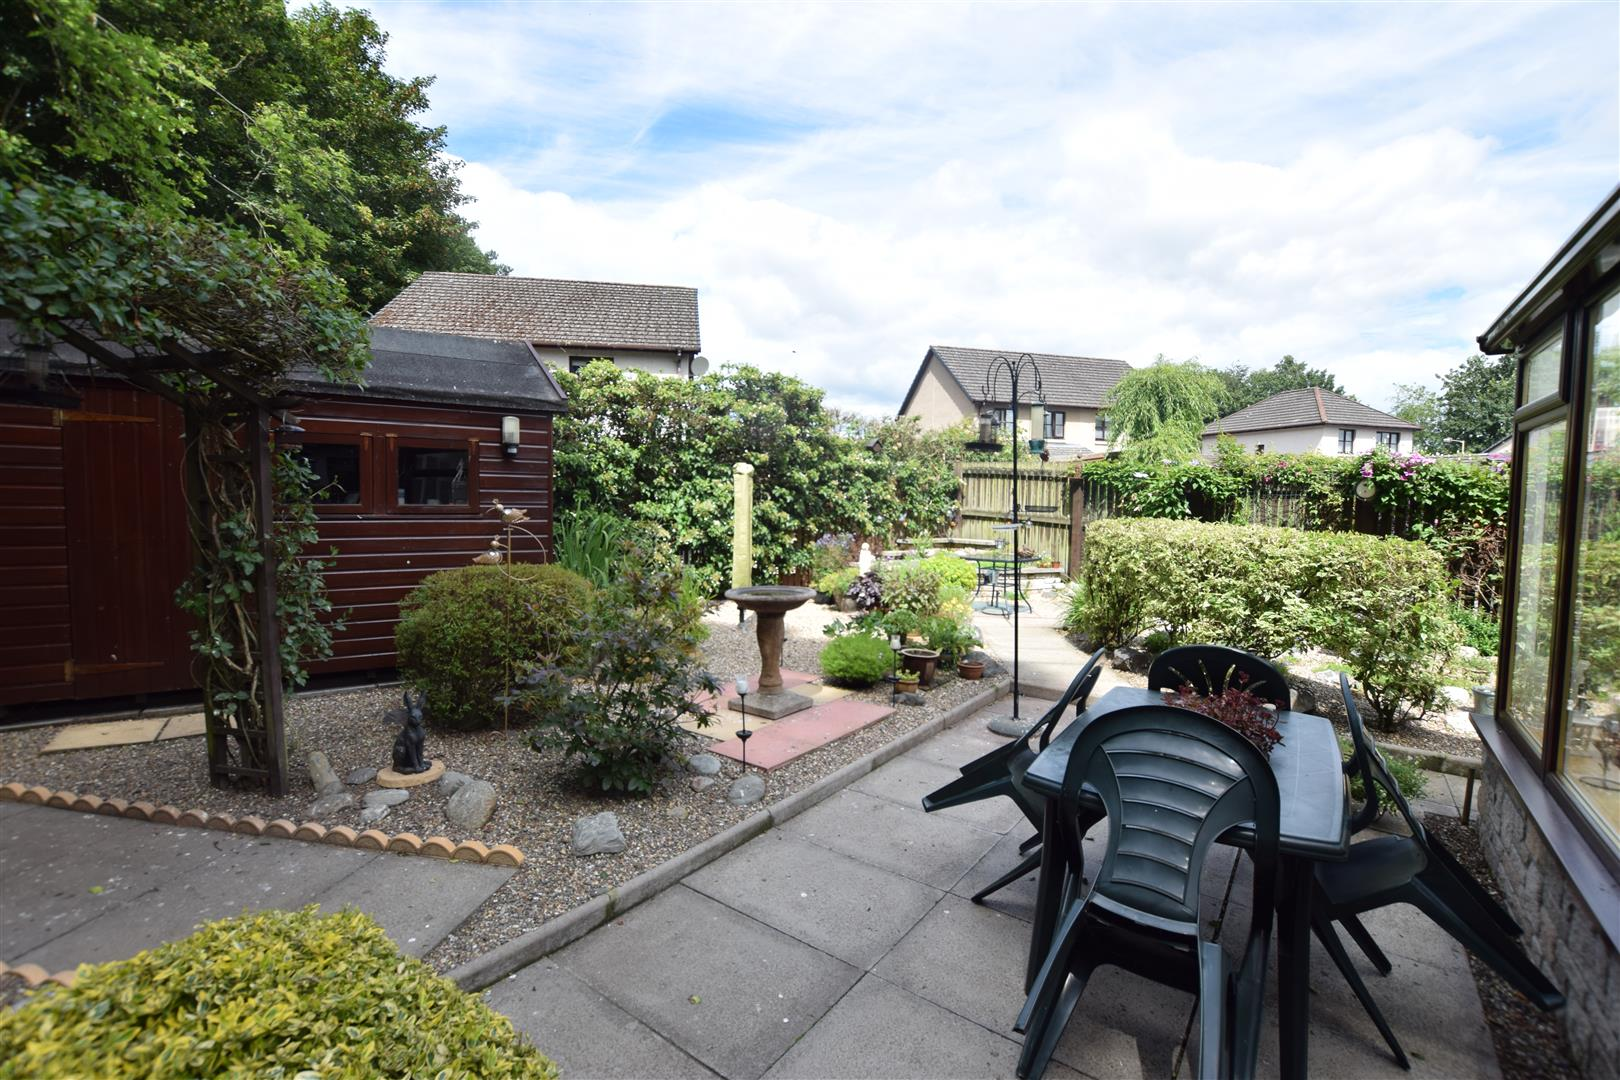 22, Admiralty Wood, Almondbank, PERTH, PH1 3XW, UK